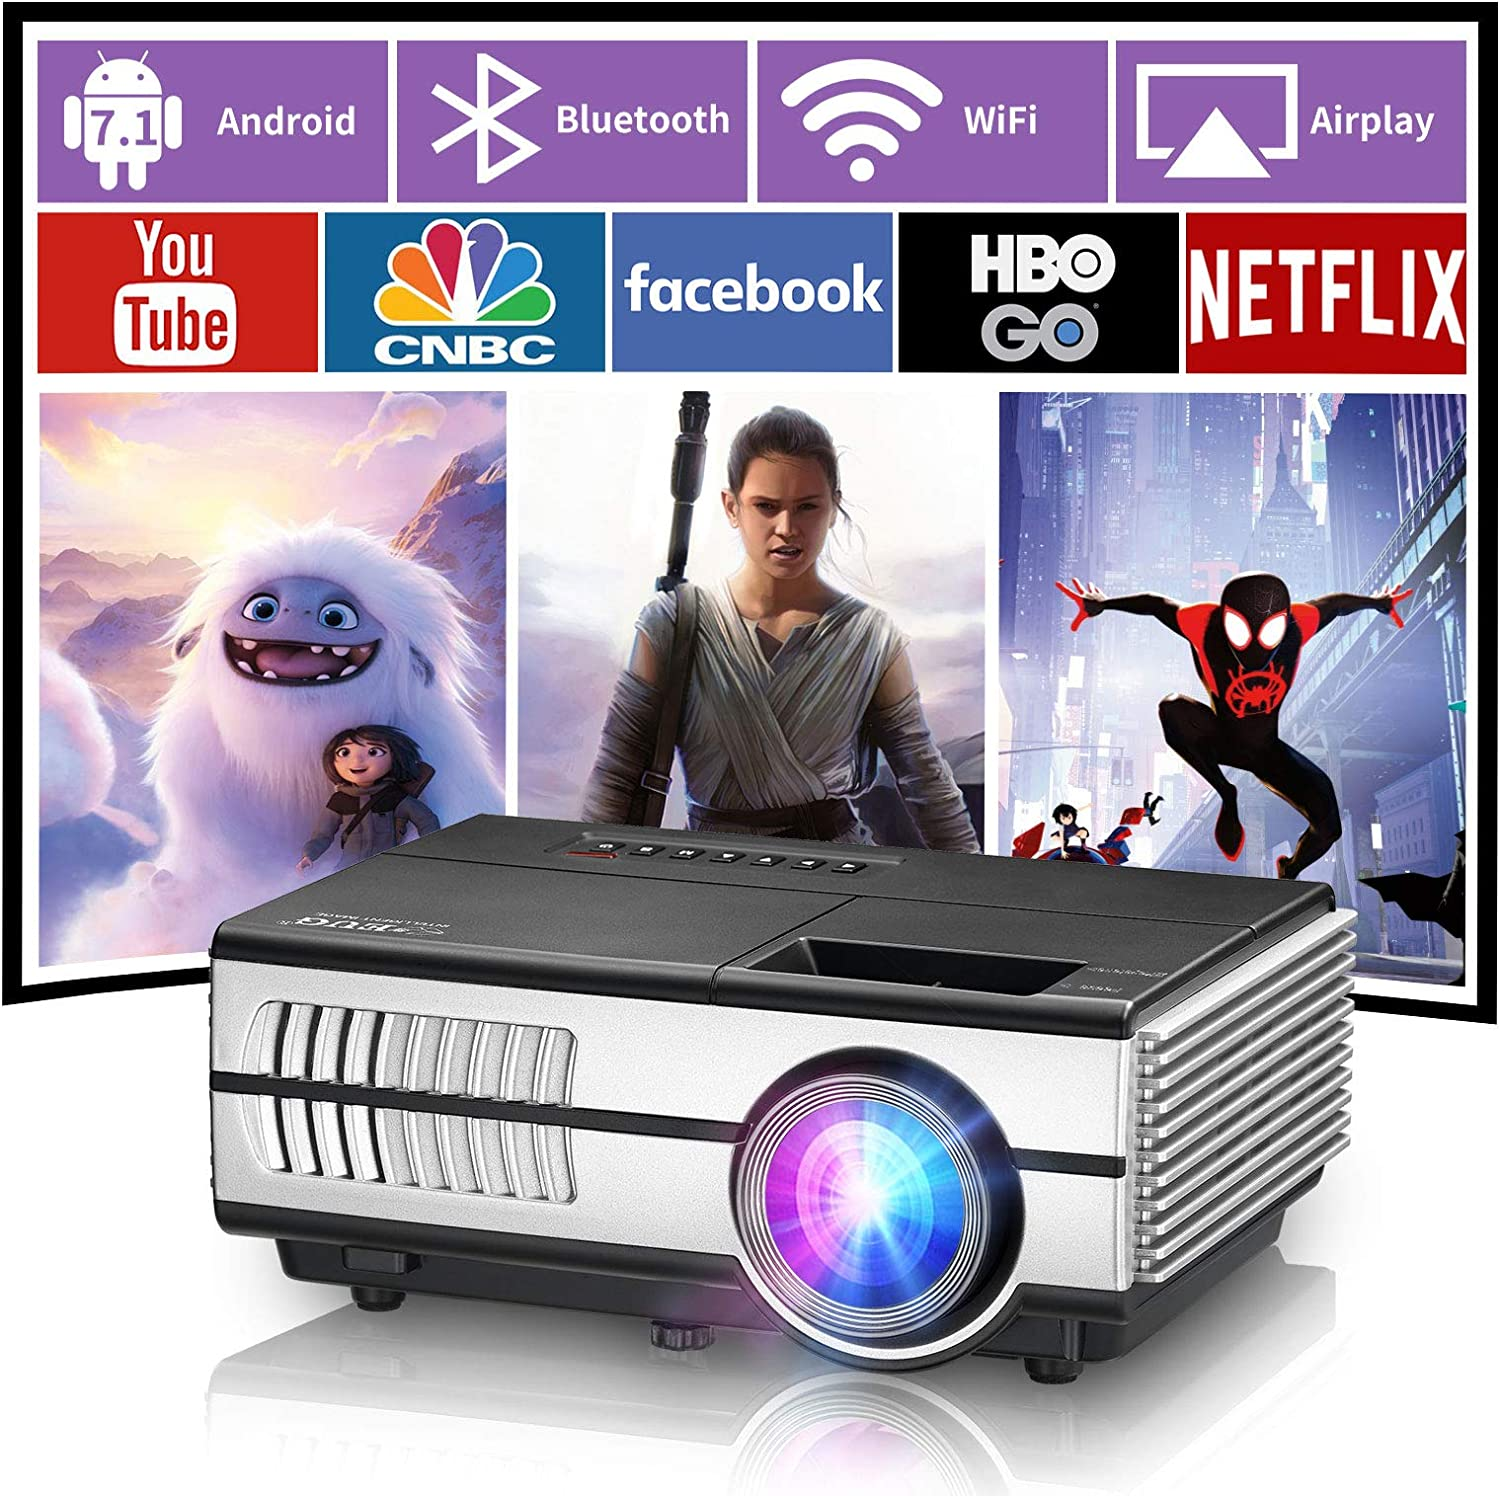 Portable Projector Android Wireless Wifi Bluetooth Hdmi Projector Support Airplay 4D Keystone Zoom Usb for iOS Smart Phone Tv Laptop Pc Ac Vga Ps4